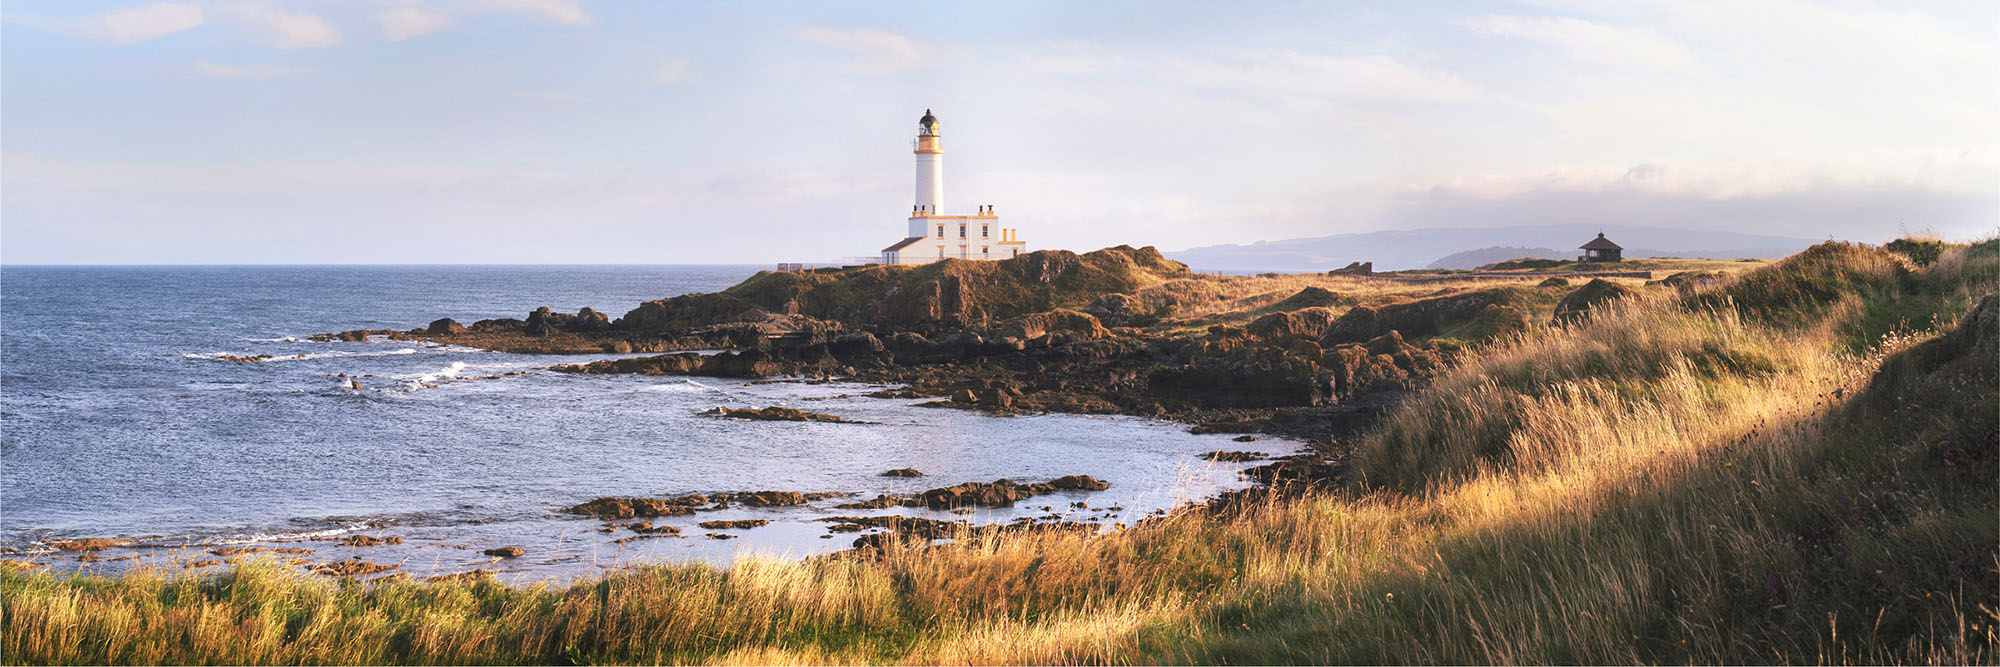 Golf Course Image - Turnberry Ailsa Lighthouse